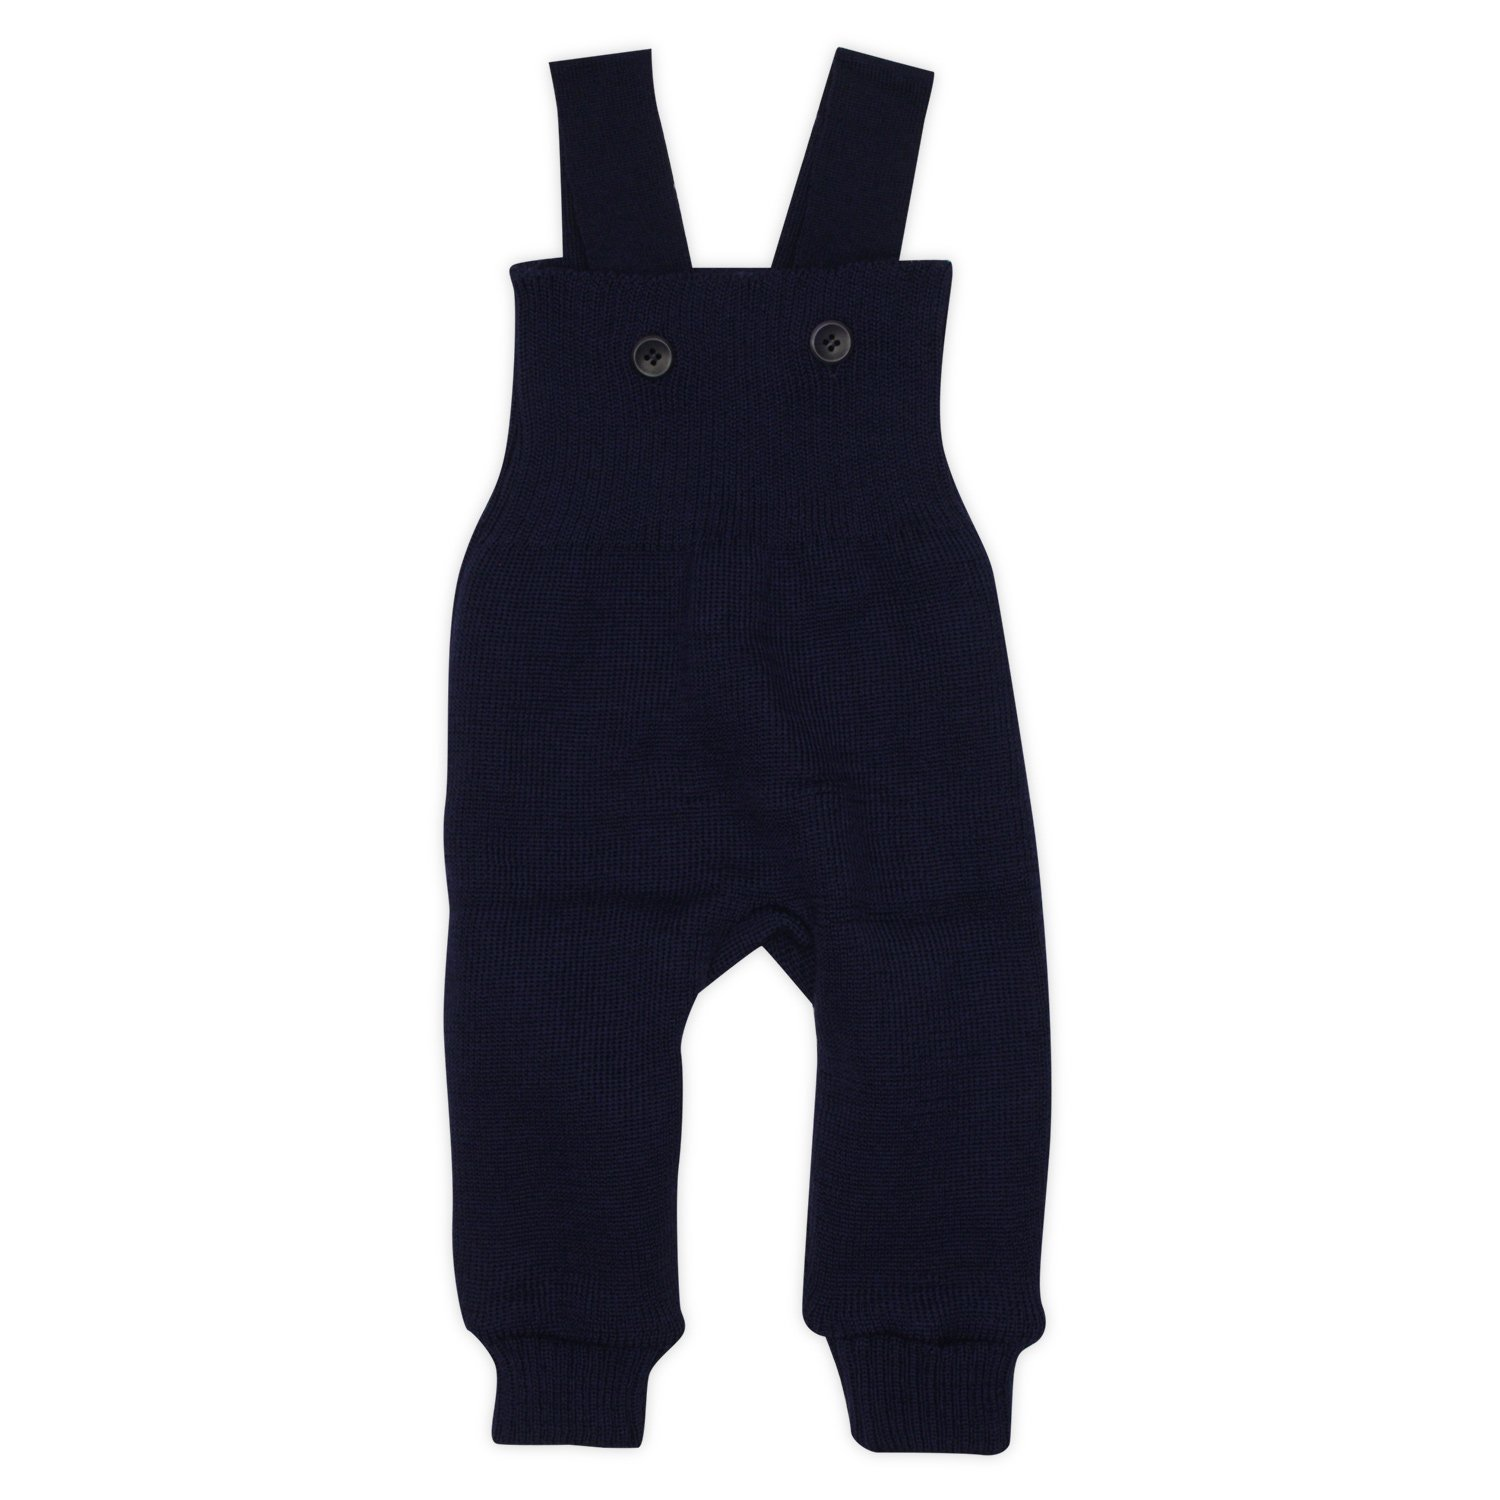 Disana Knitted Baby Dungarees in Organic Merino Wool Navy 74/80 6-12m 26542-082-00502-21